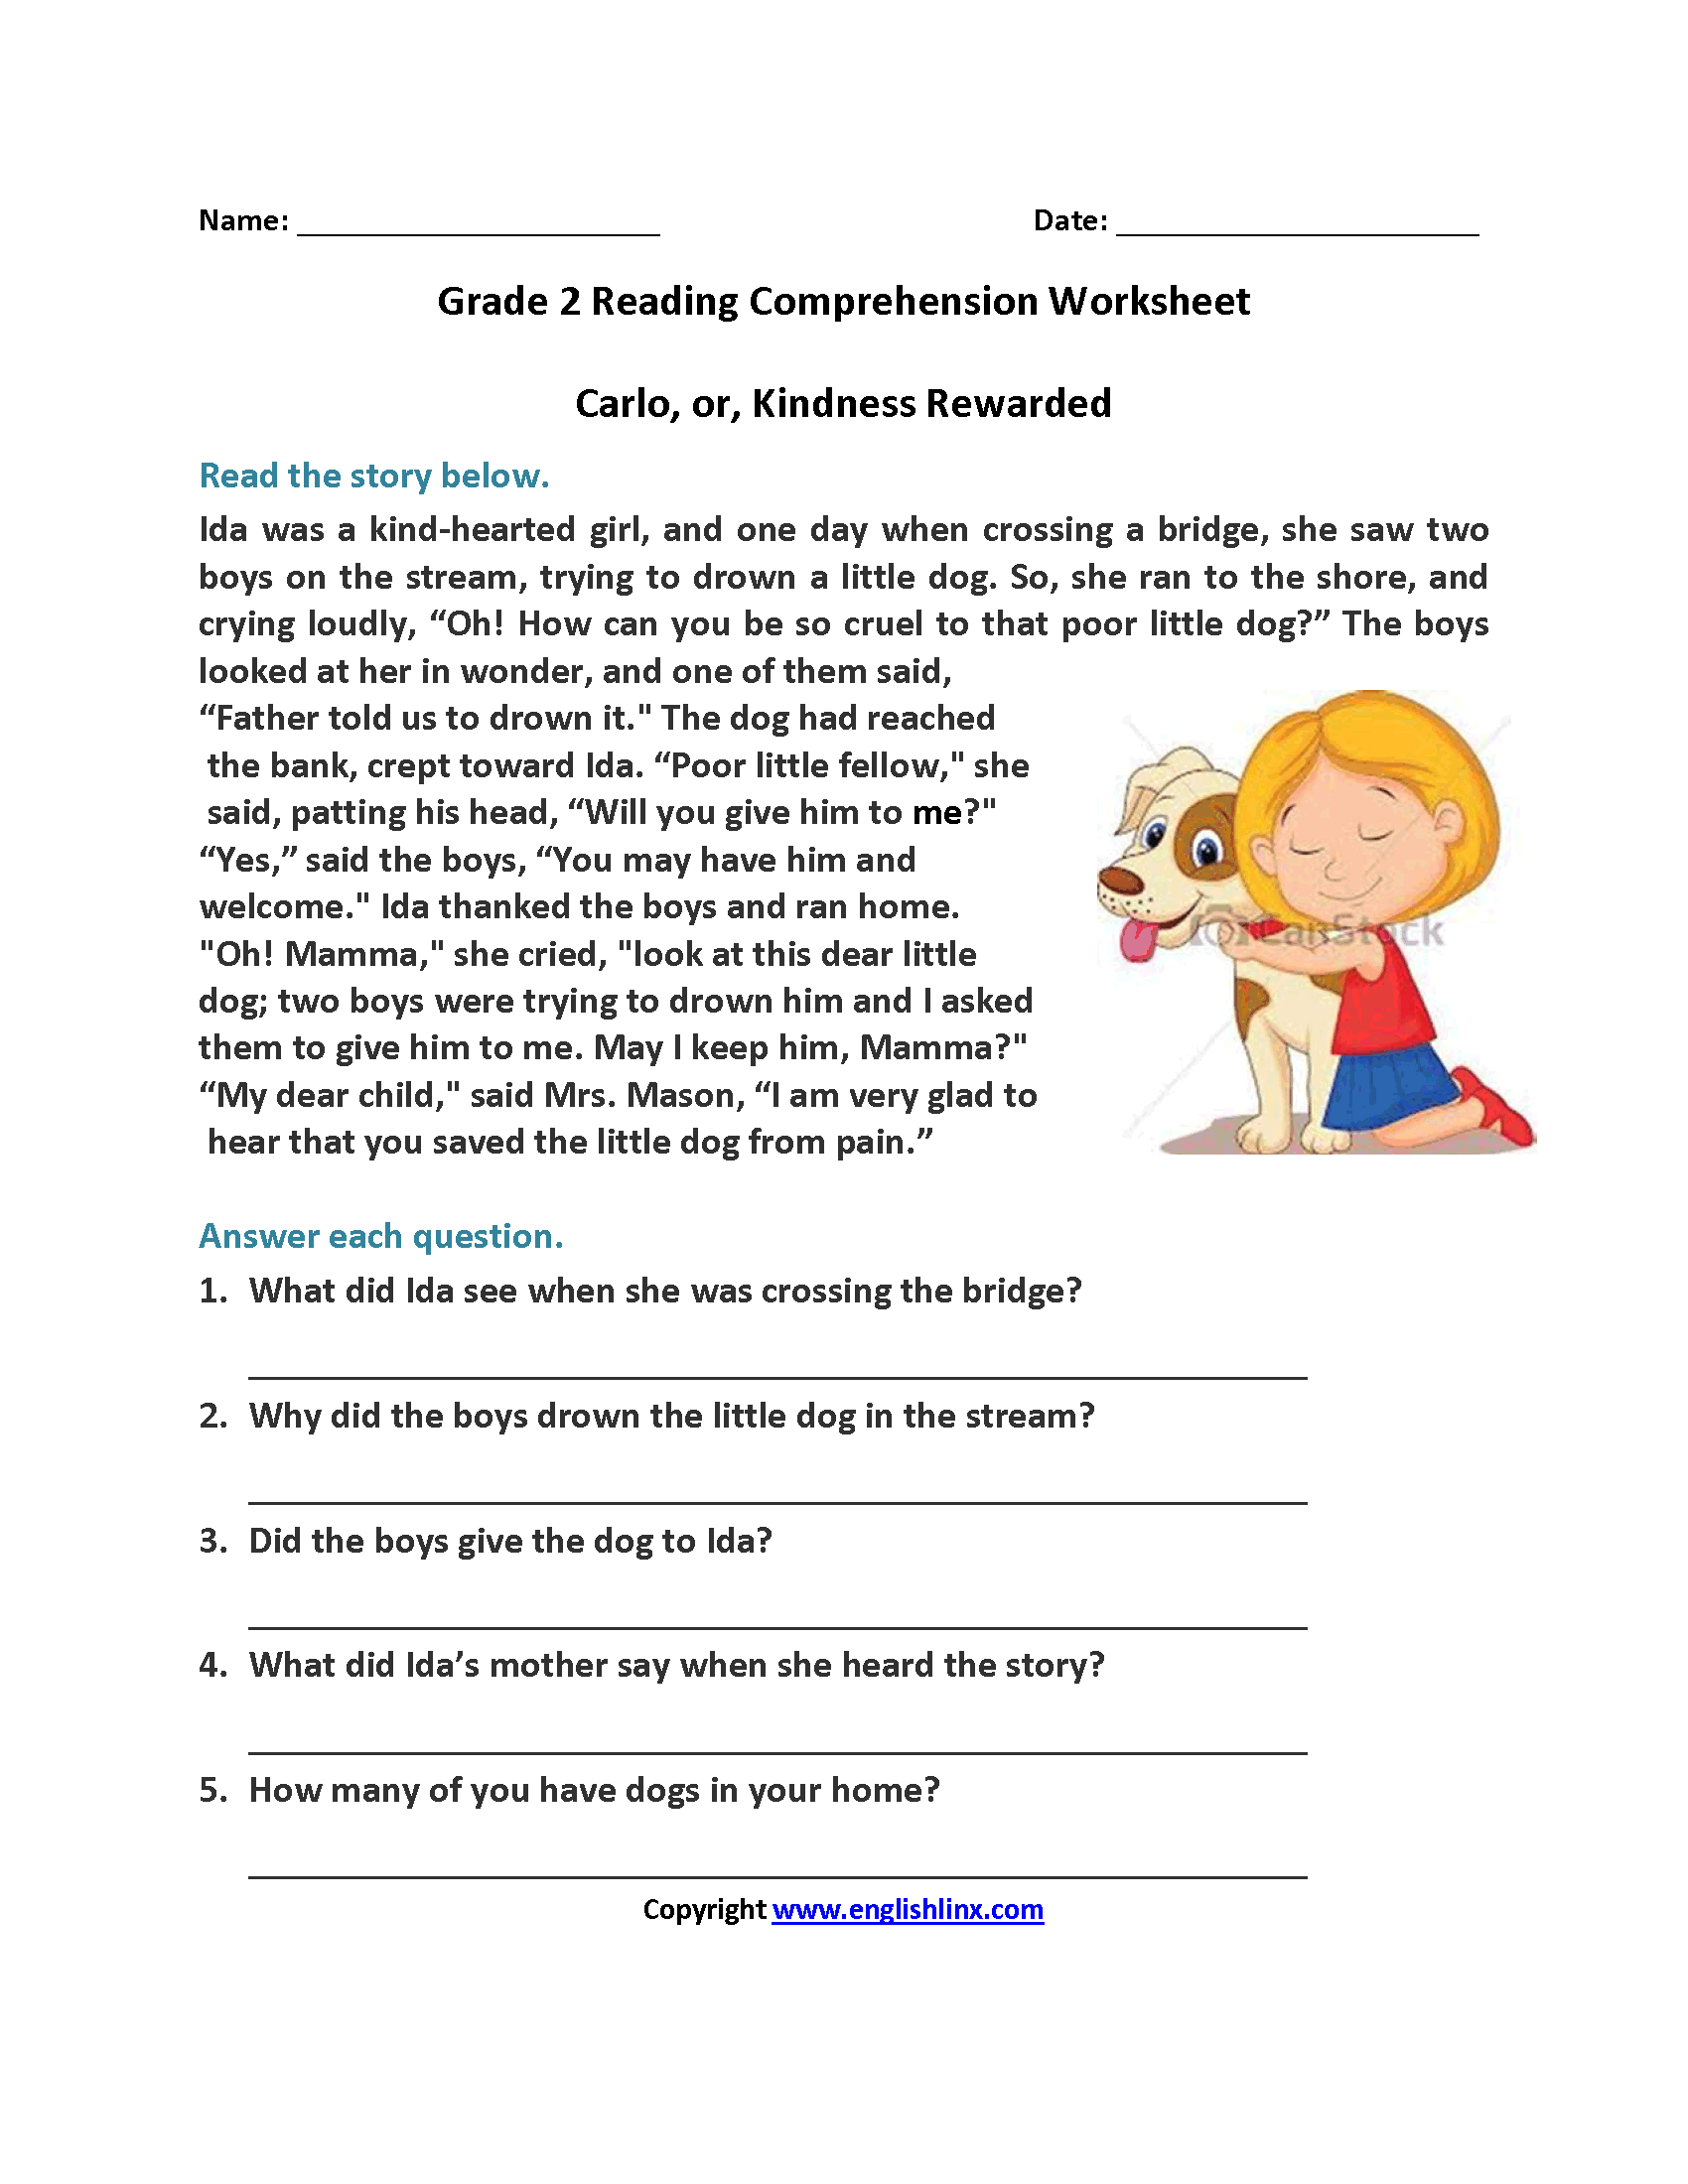 Carlo Or Kindness Rewarded Second Grade Reading Worksheets | Reading | Third Grade Reading Worksheets Free Printable